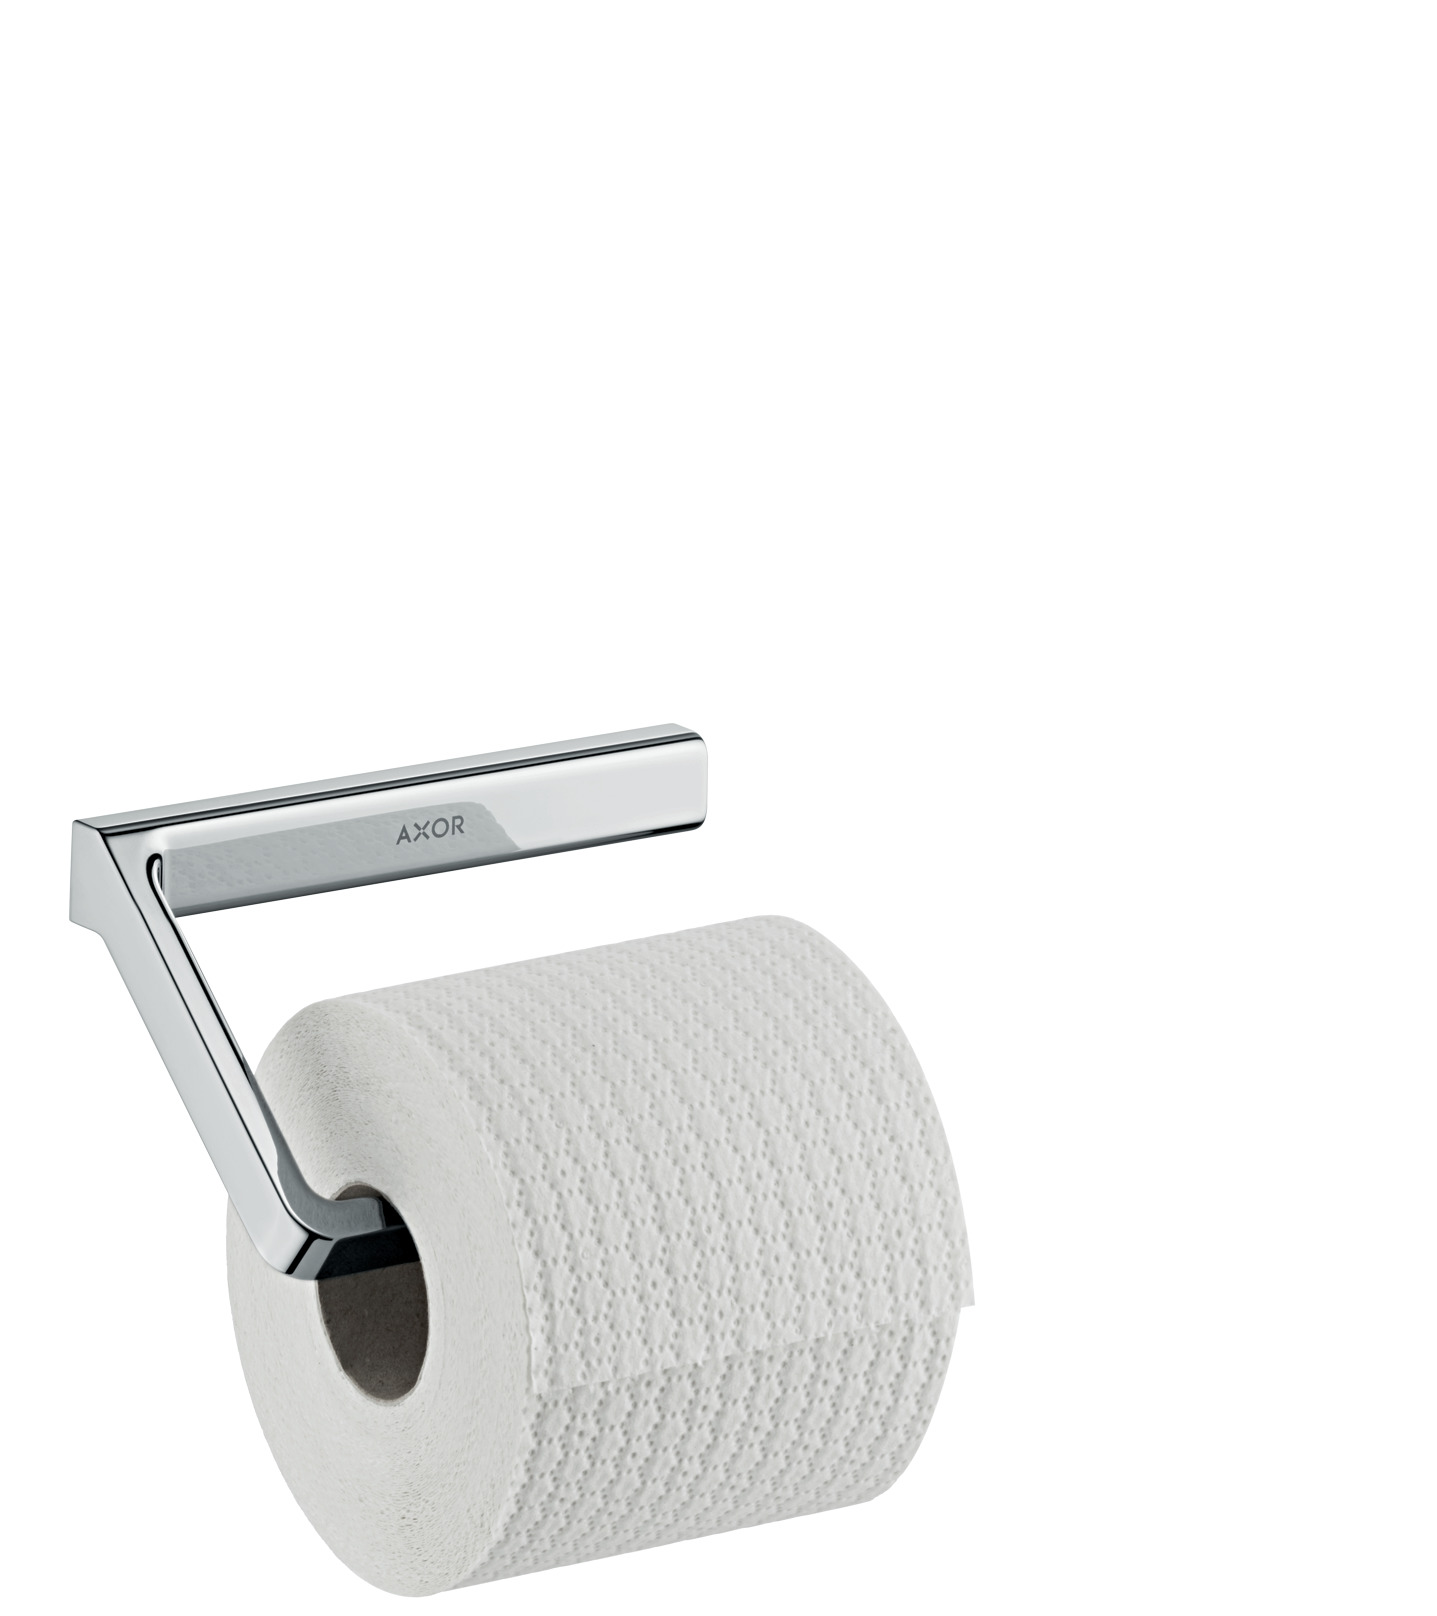 Axor Int Axor Universal Accessories Roll Holder Without